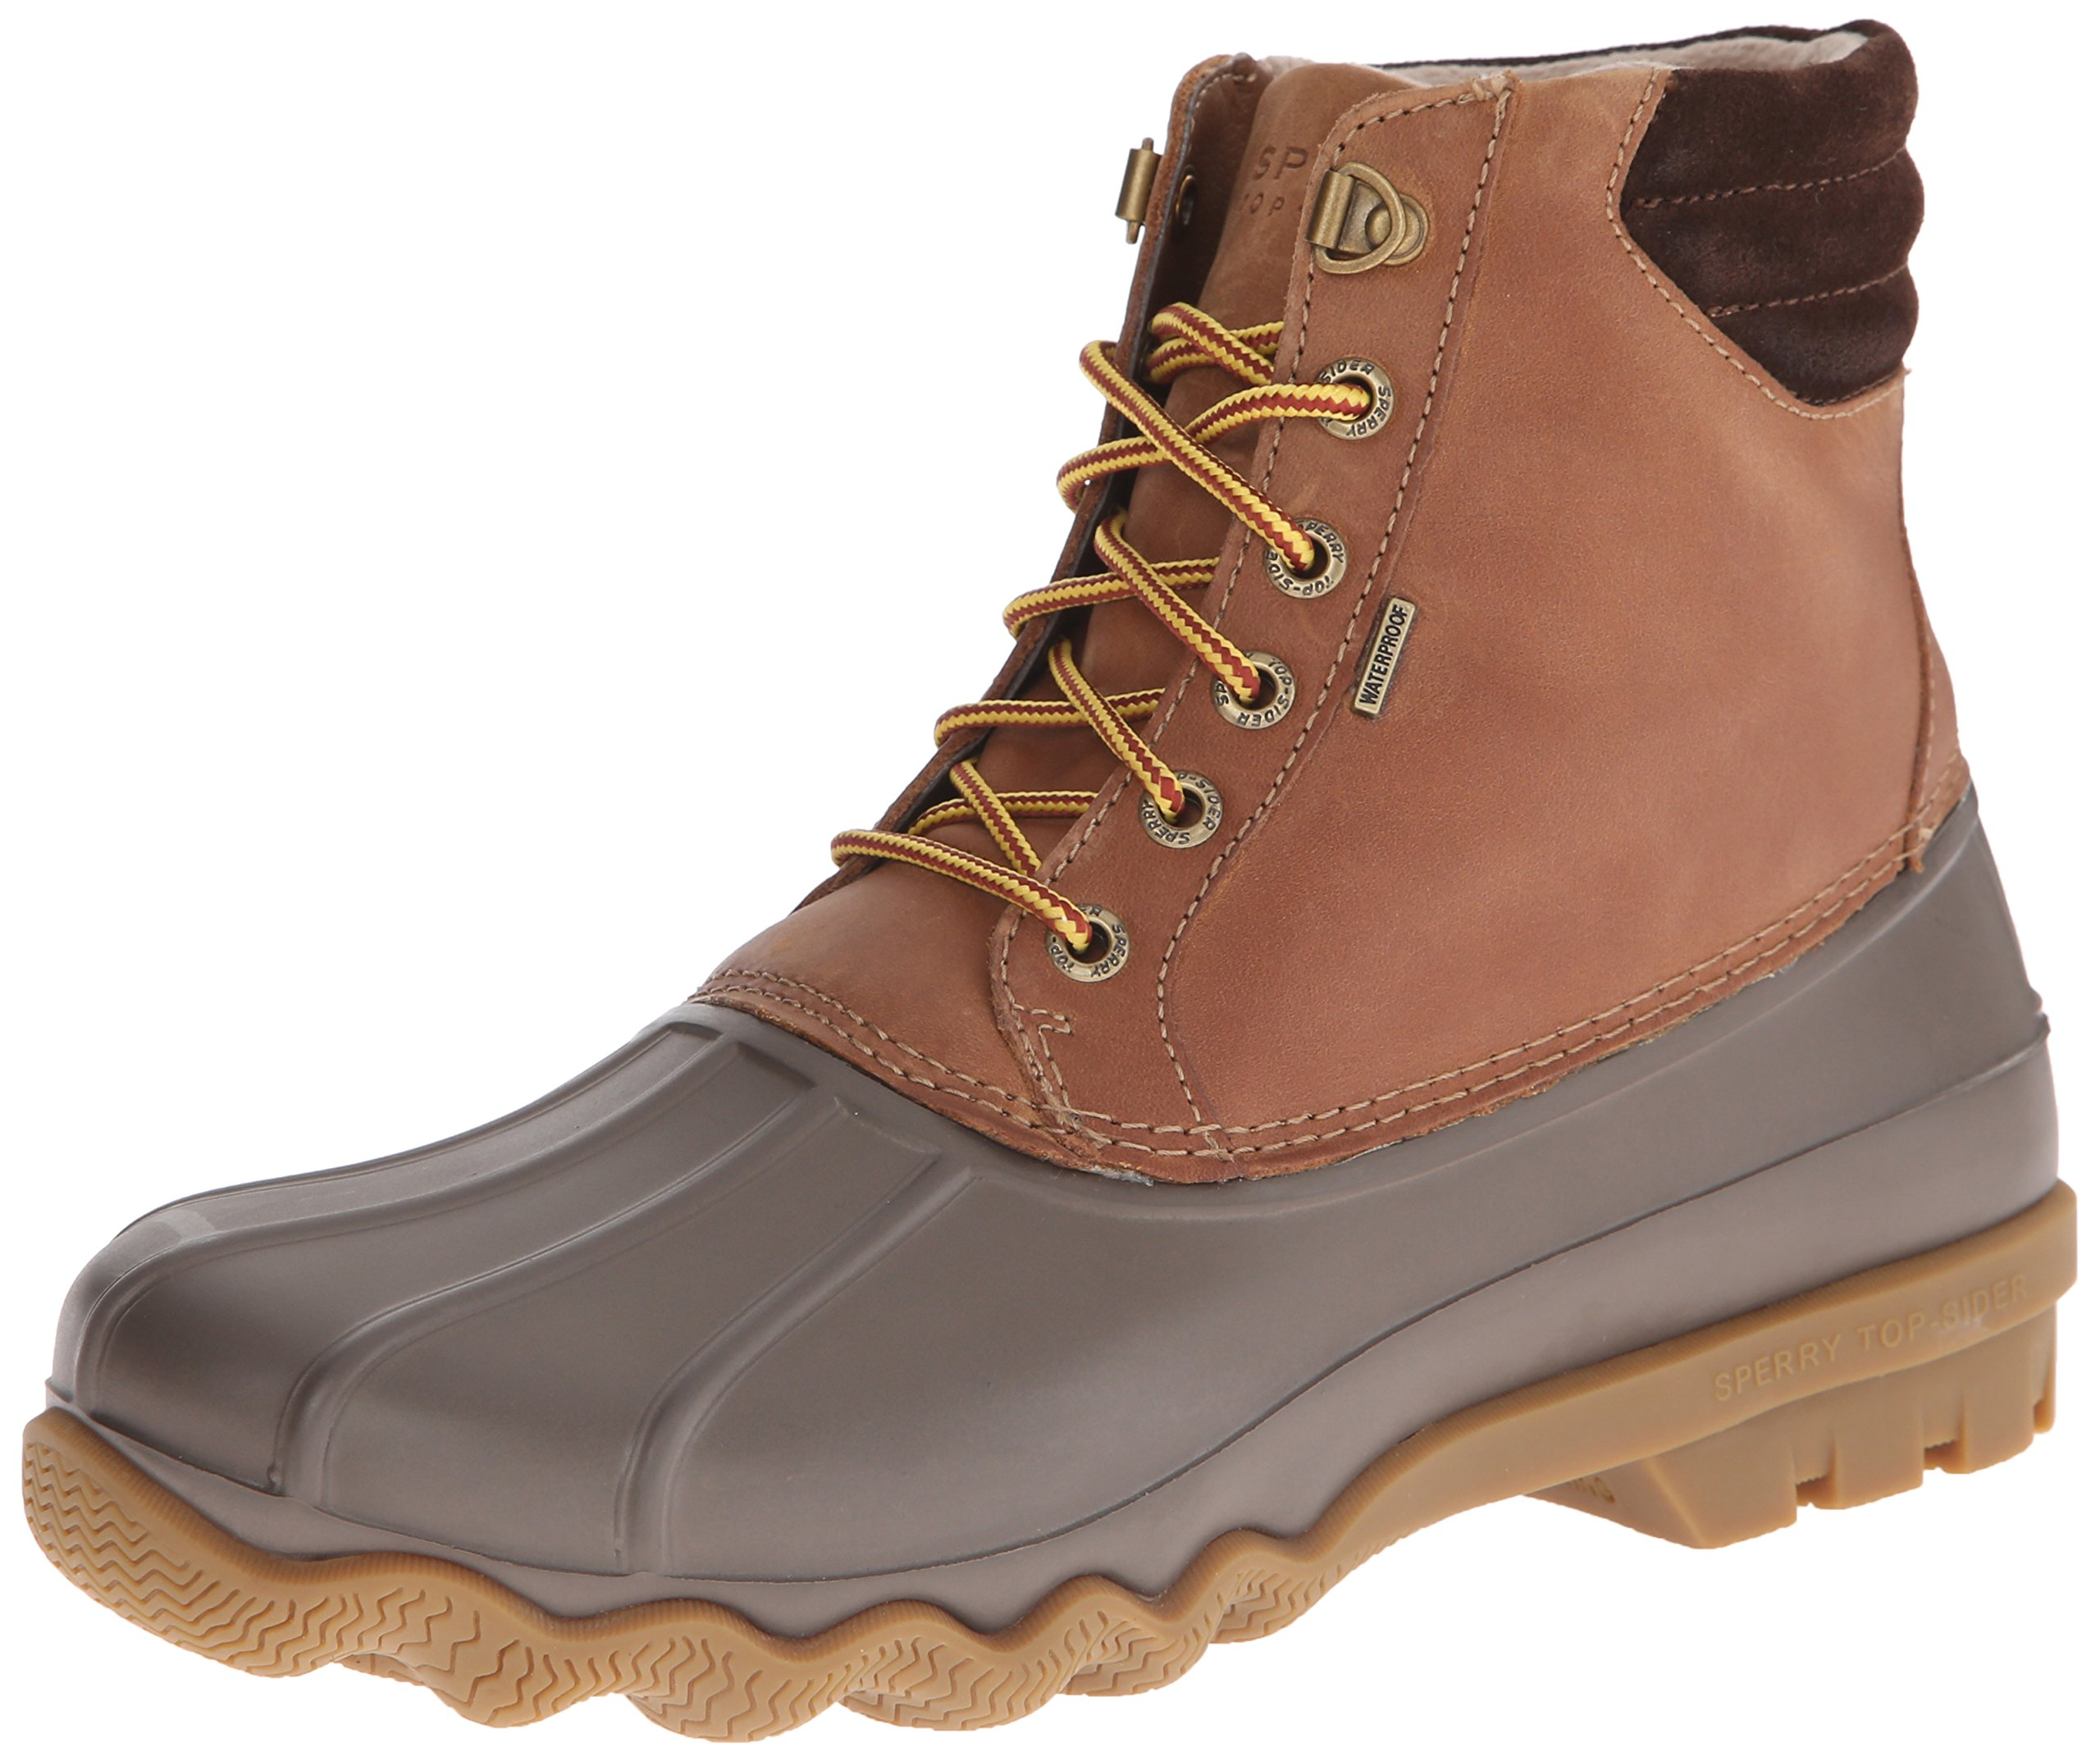 Sperry Mens Avenue Duck Boots, Tan/Brown, 10 by SPERRY